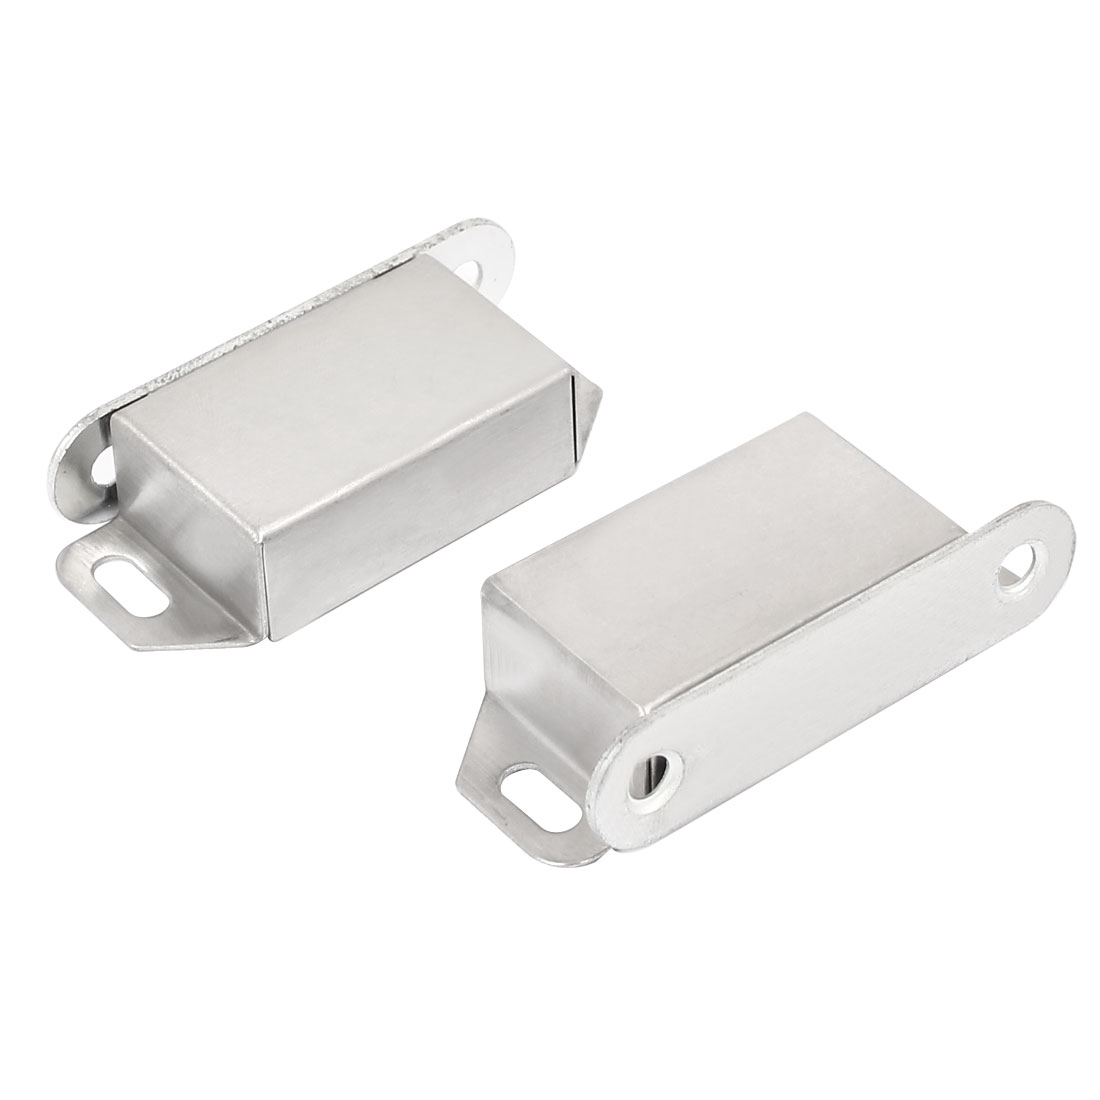 Cupboard Cabinet Stainless Steel Magnetic Catch Door Latch Silver Tone 2pcs